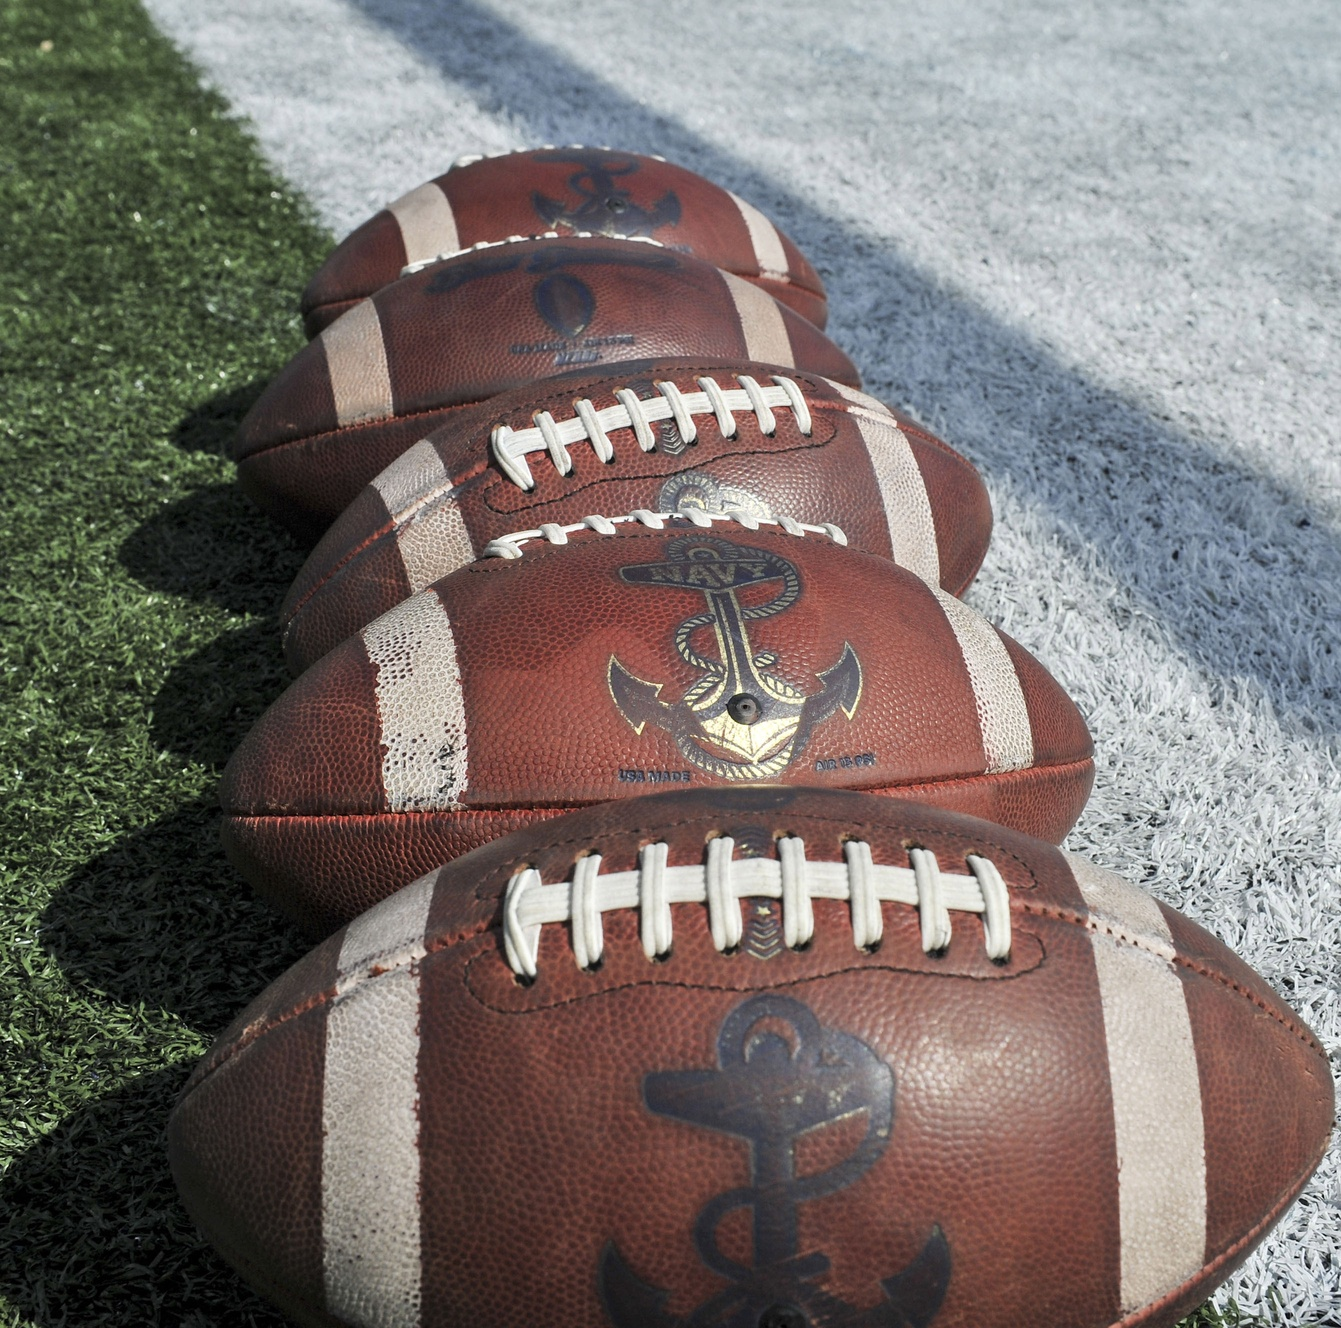 View of footballs before the Oct. 14, 2017, game between the Memphis Tigers and the Navy Midshipmen at Liberty Bowl Memorial Stadium. (Justin Ford/USA TODAY Sports)